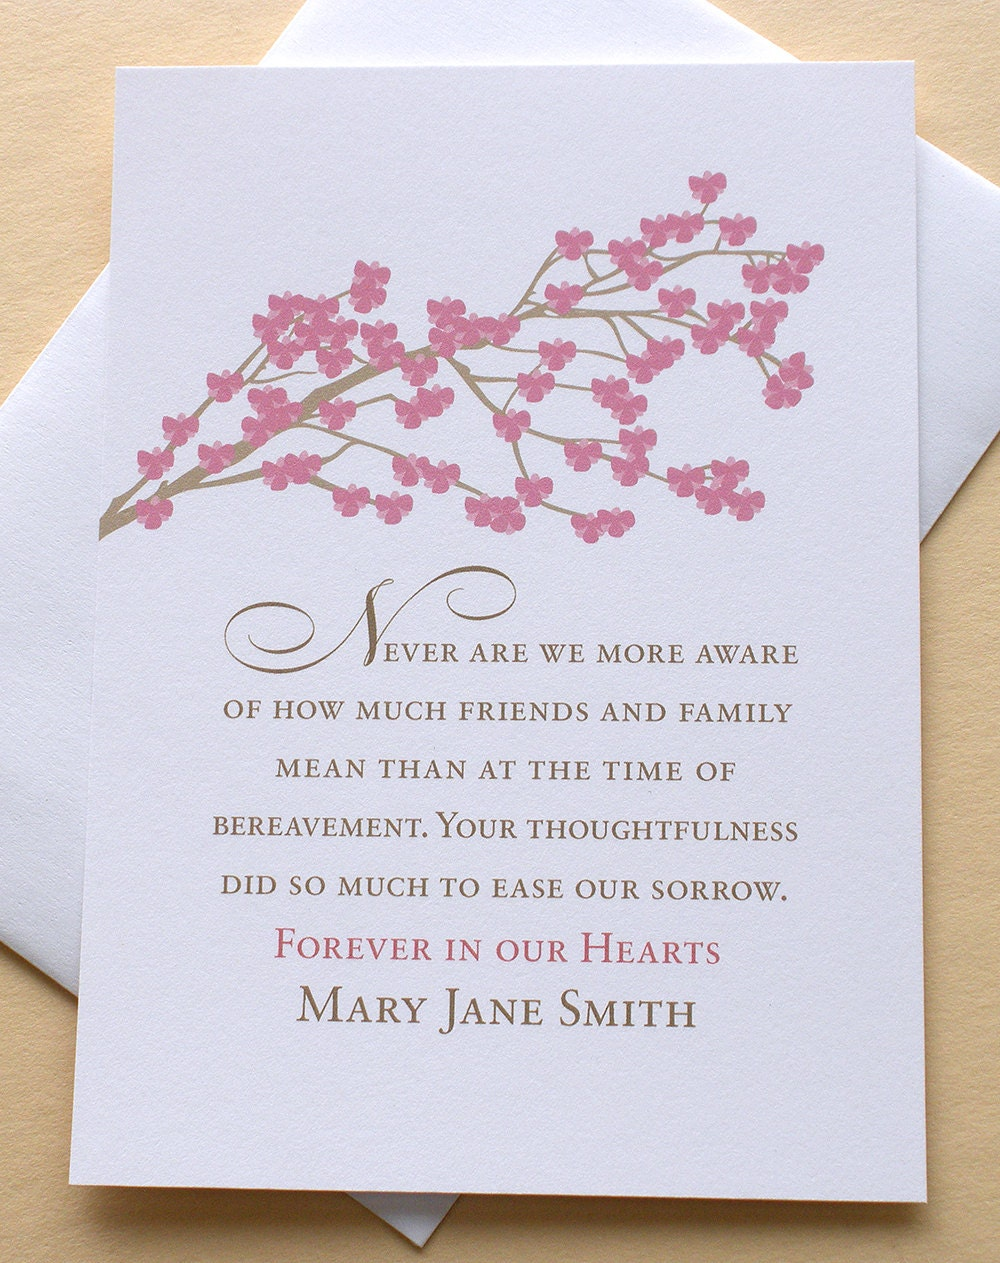 funeral thank you sympathy card with rose colored